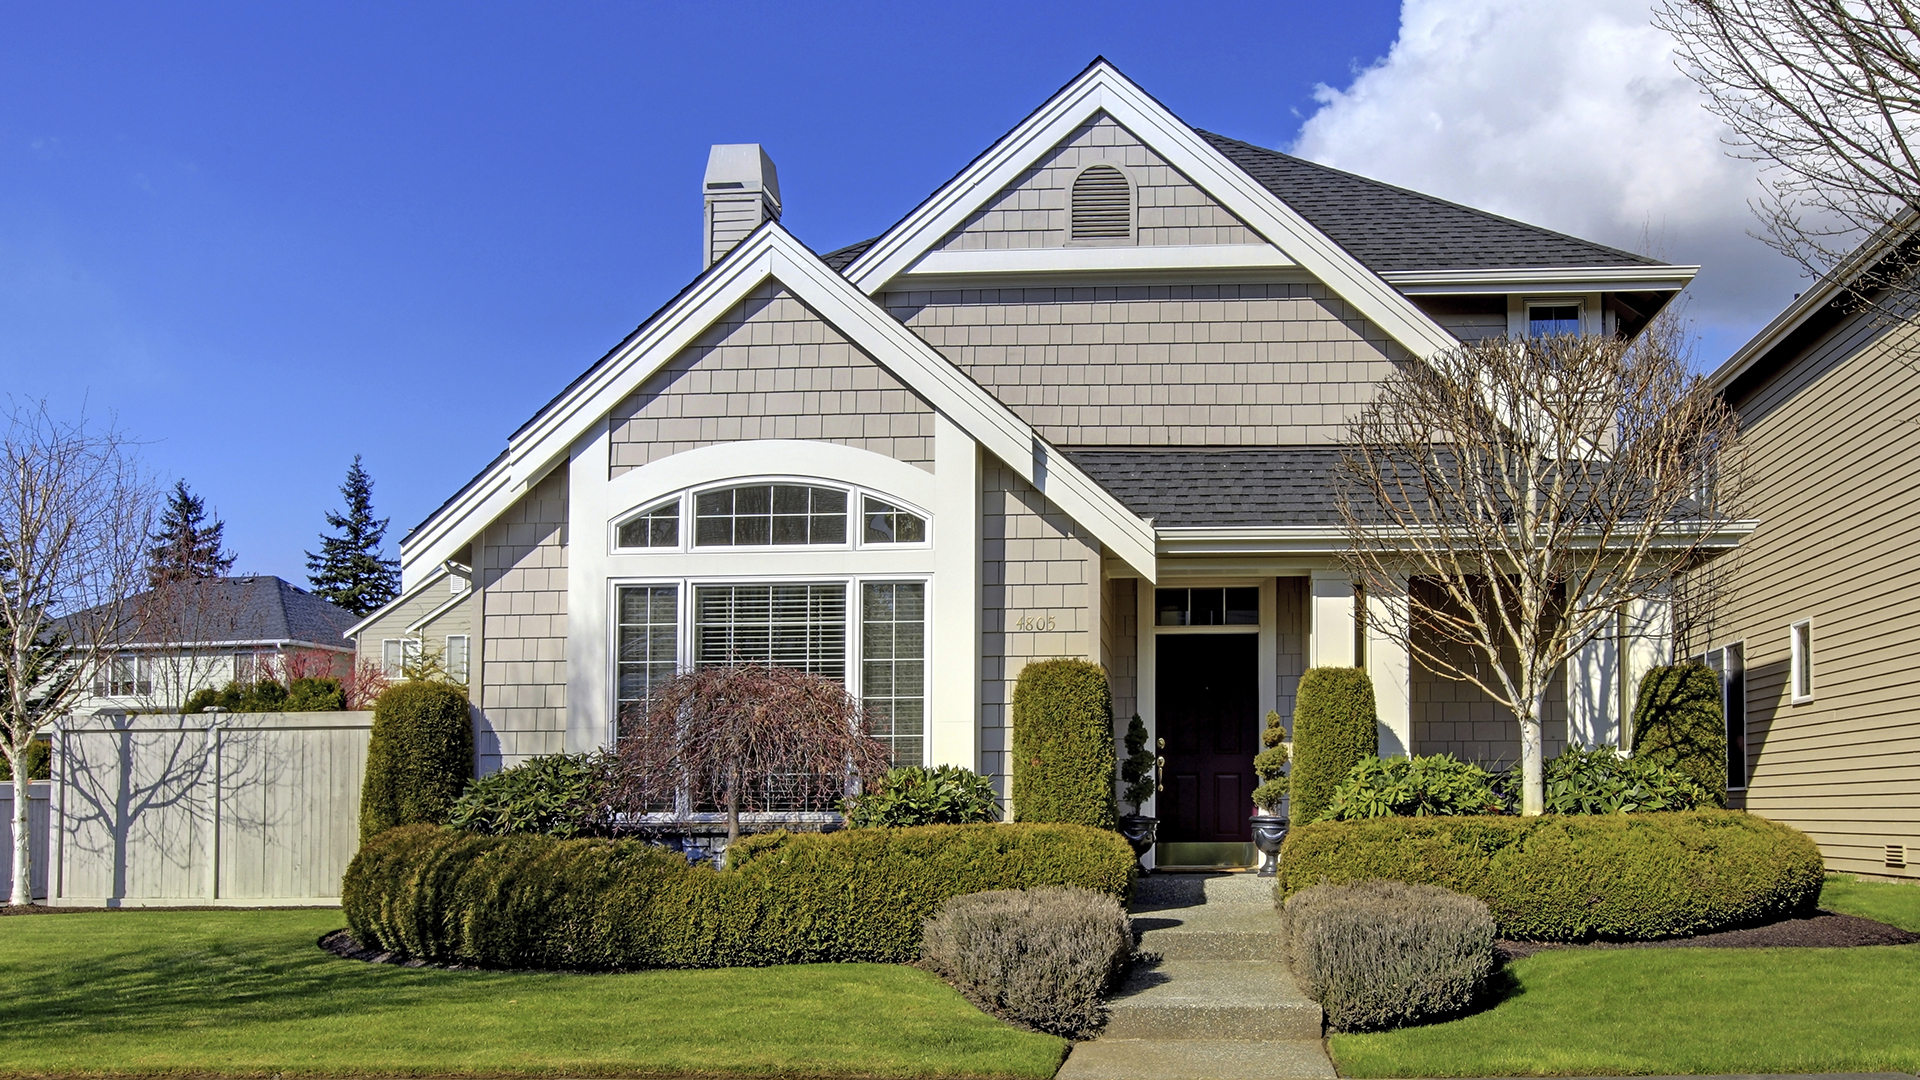 Why Wait Roofing : Roofing : Siding : Gutters : Chaska, MN